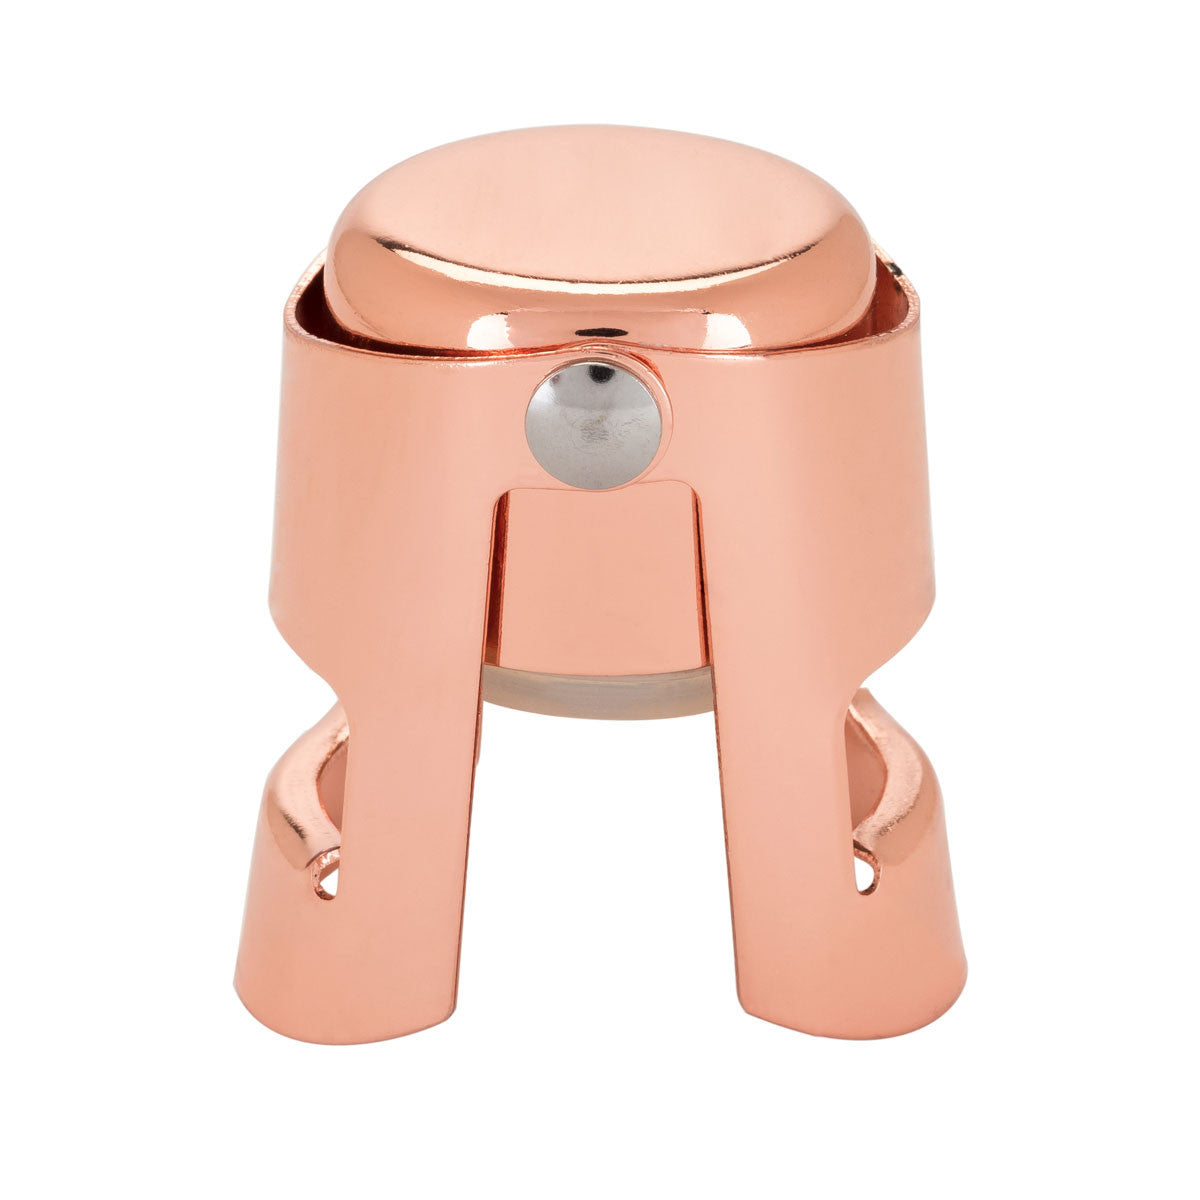 Copper Champagne Stopper - Only £9.99